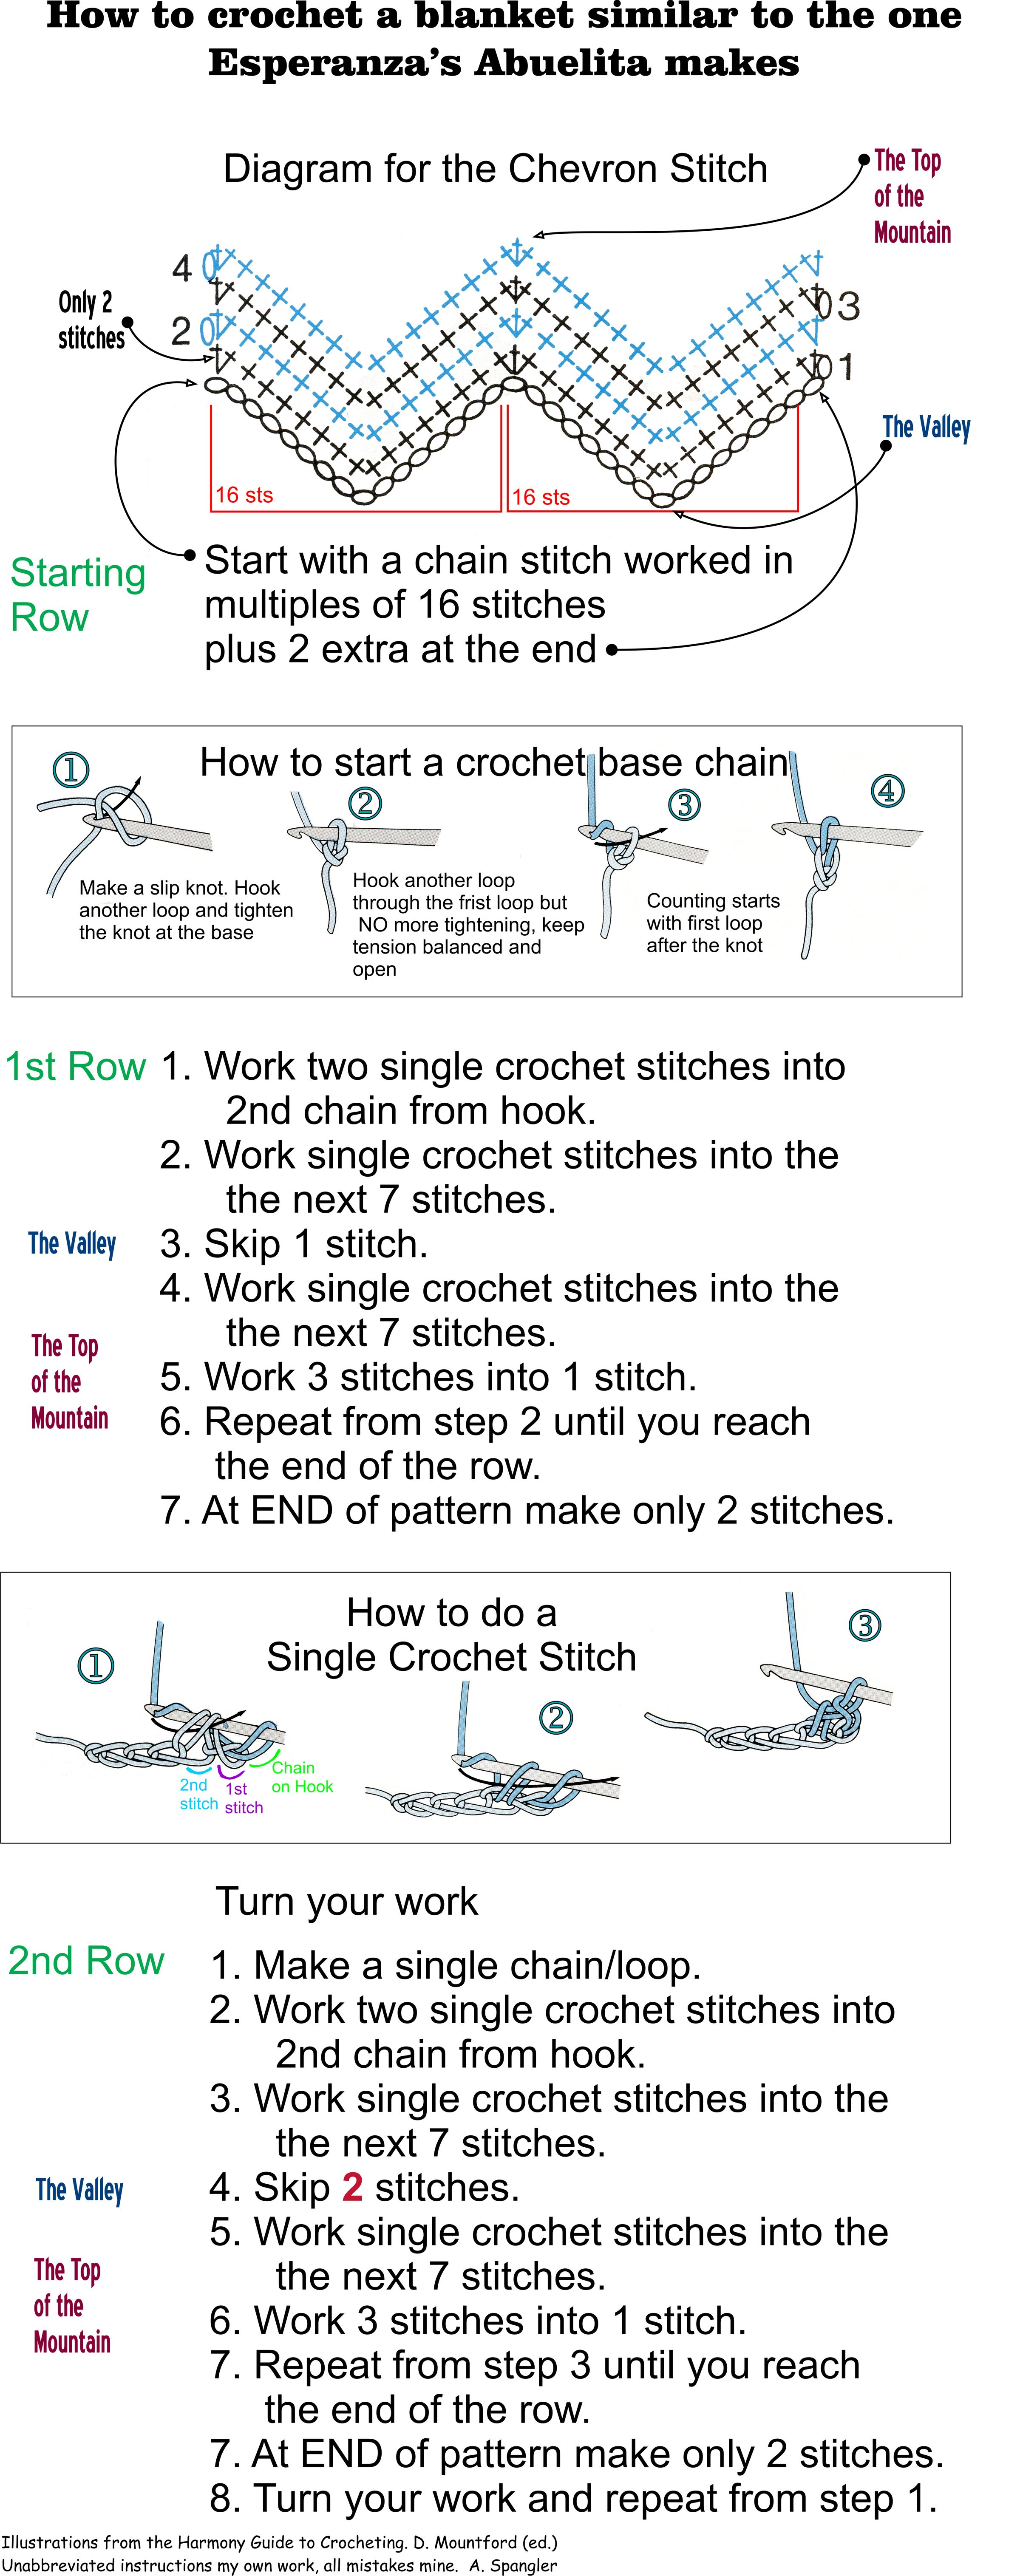 Uncategorized Esperanza Rising Worksheets instructions for crocheting a blanket similar to the one esperanzas abuelita makes designed with